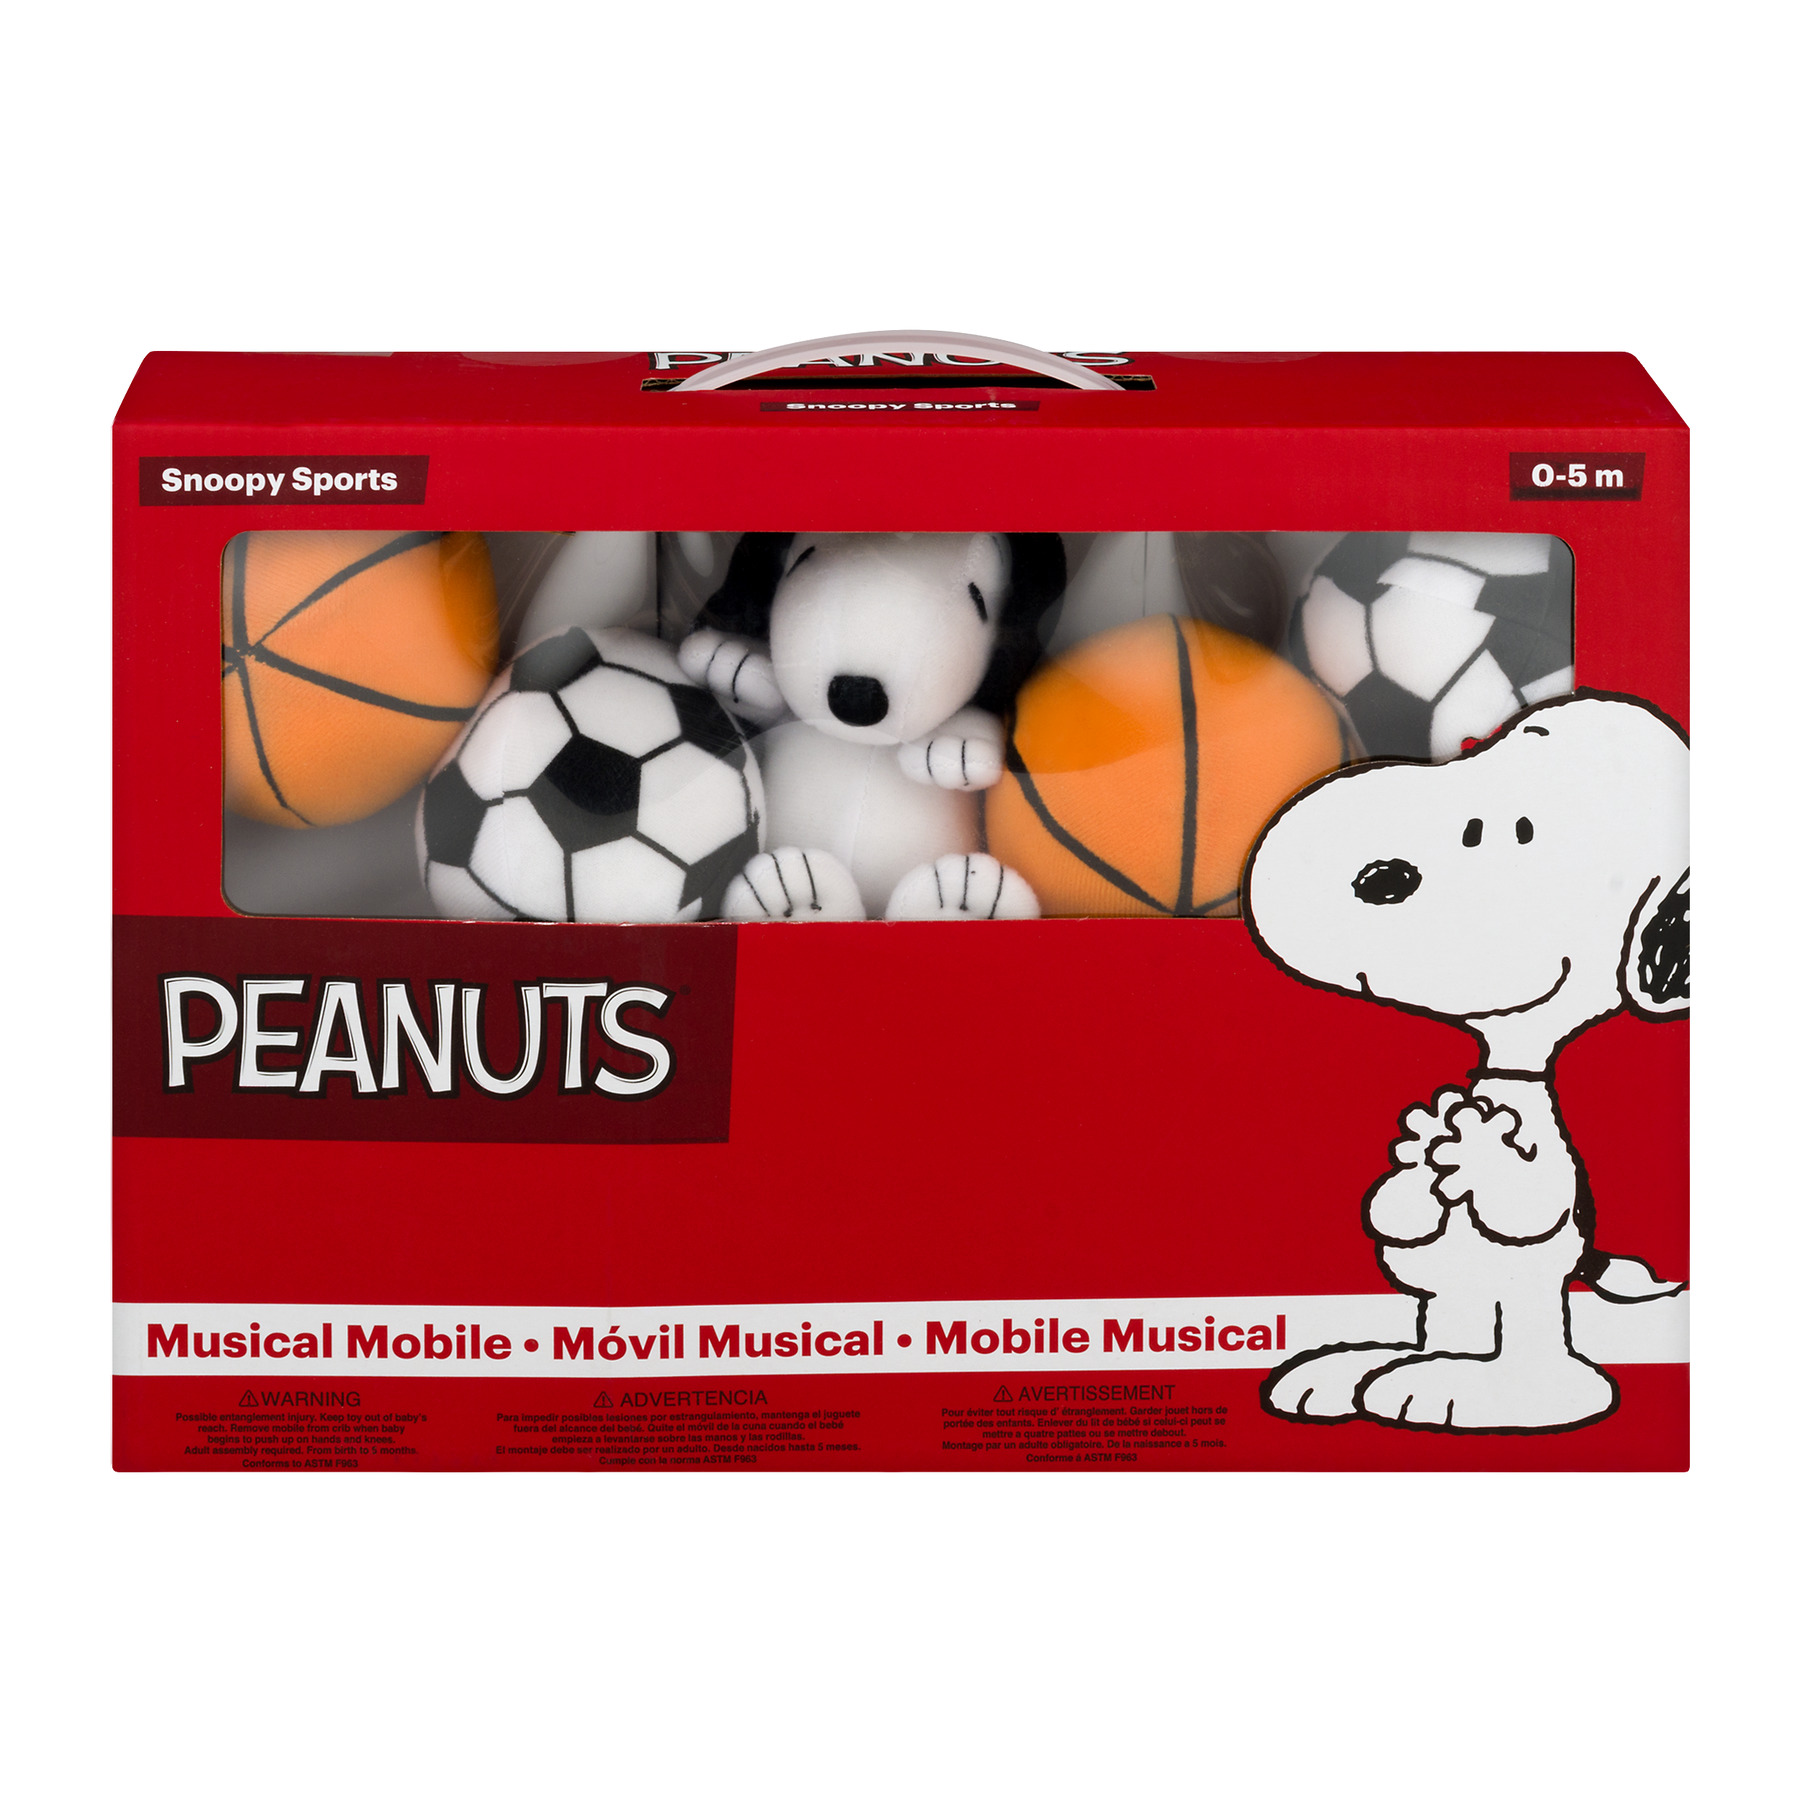 Peanuts Lamp Snoopy Sports Musical Mobile 0, 1.0 CT